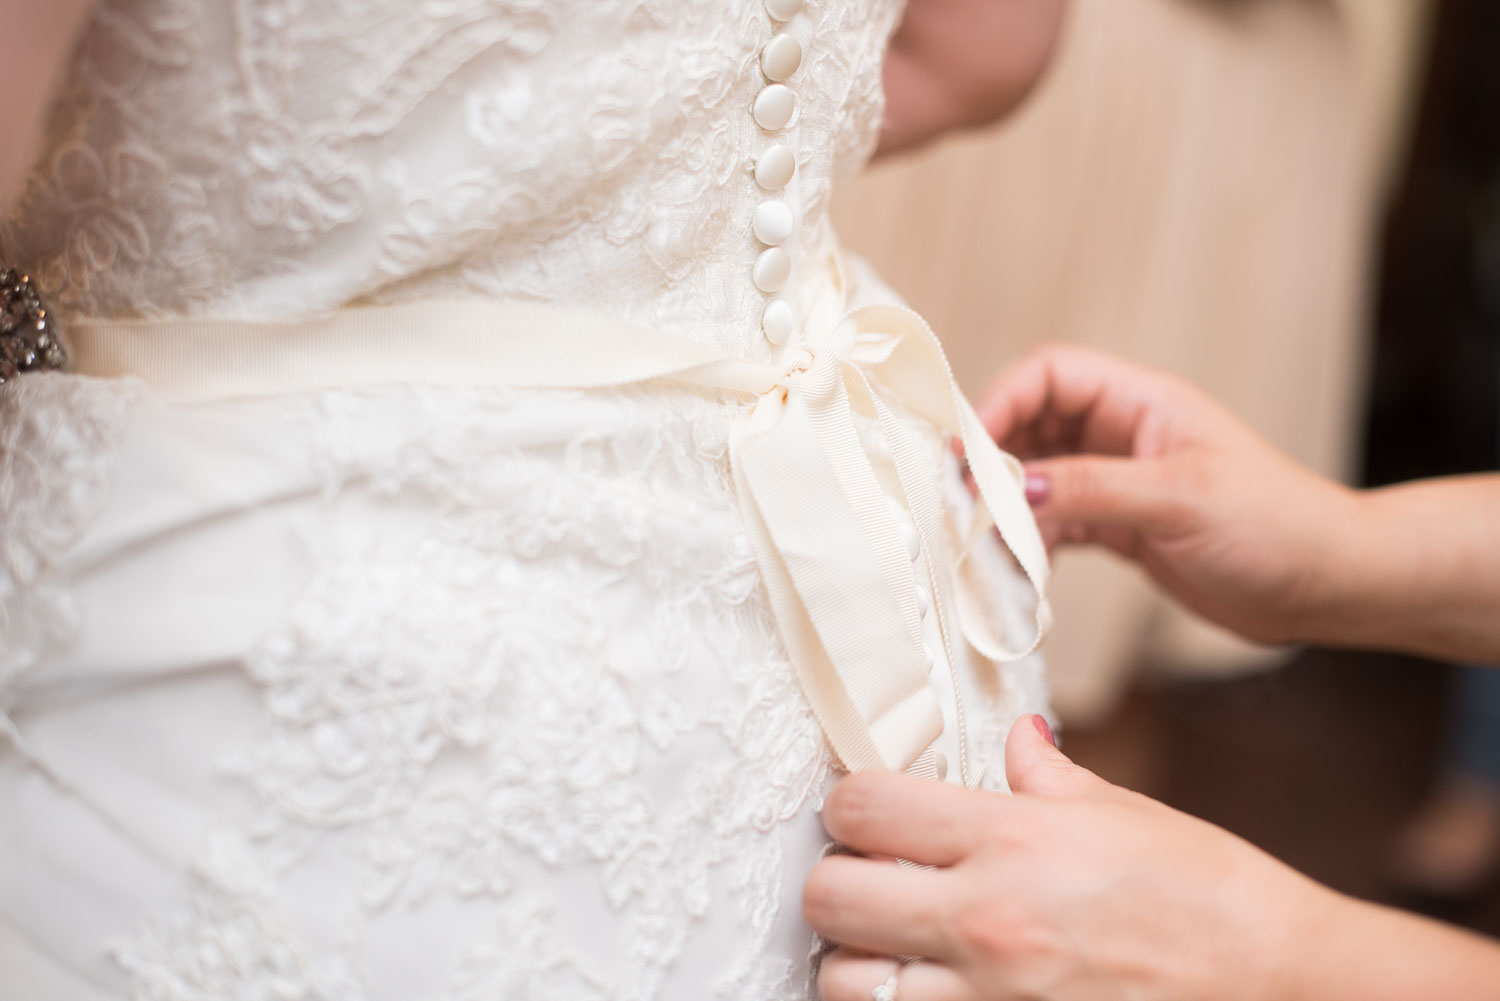 16 the bow on brittney's wedding dress is tied.jpg